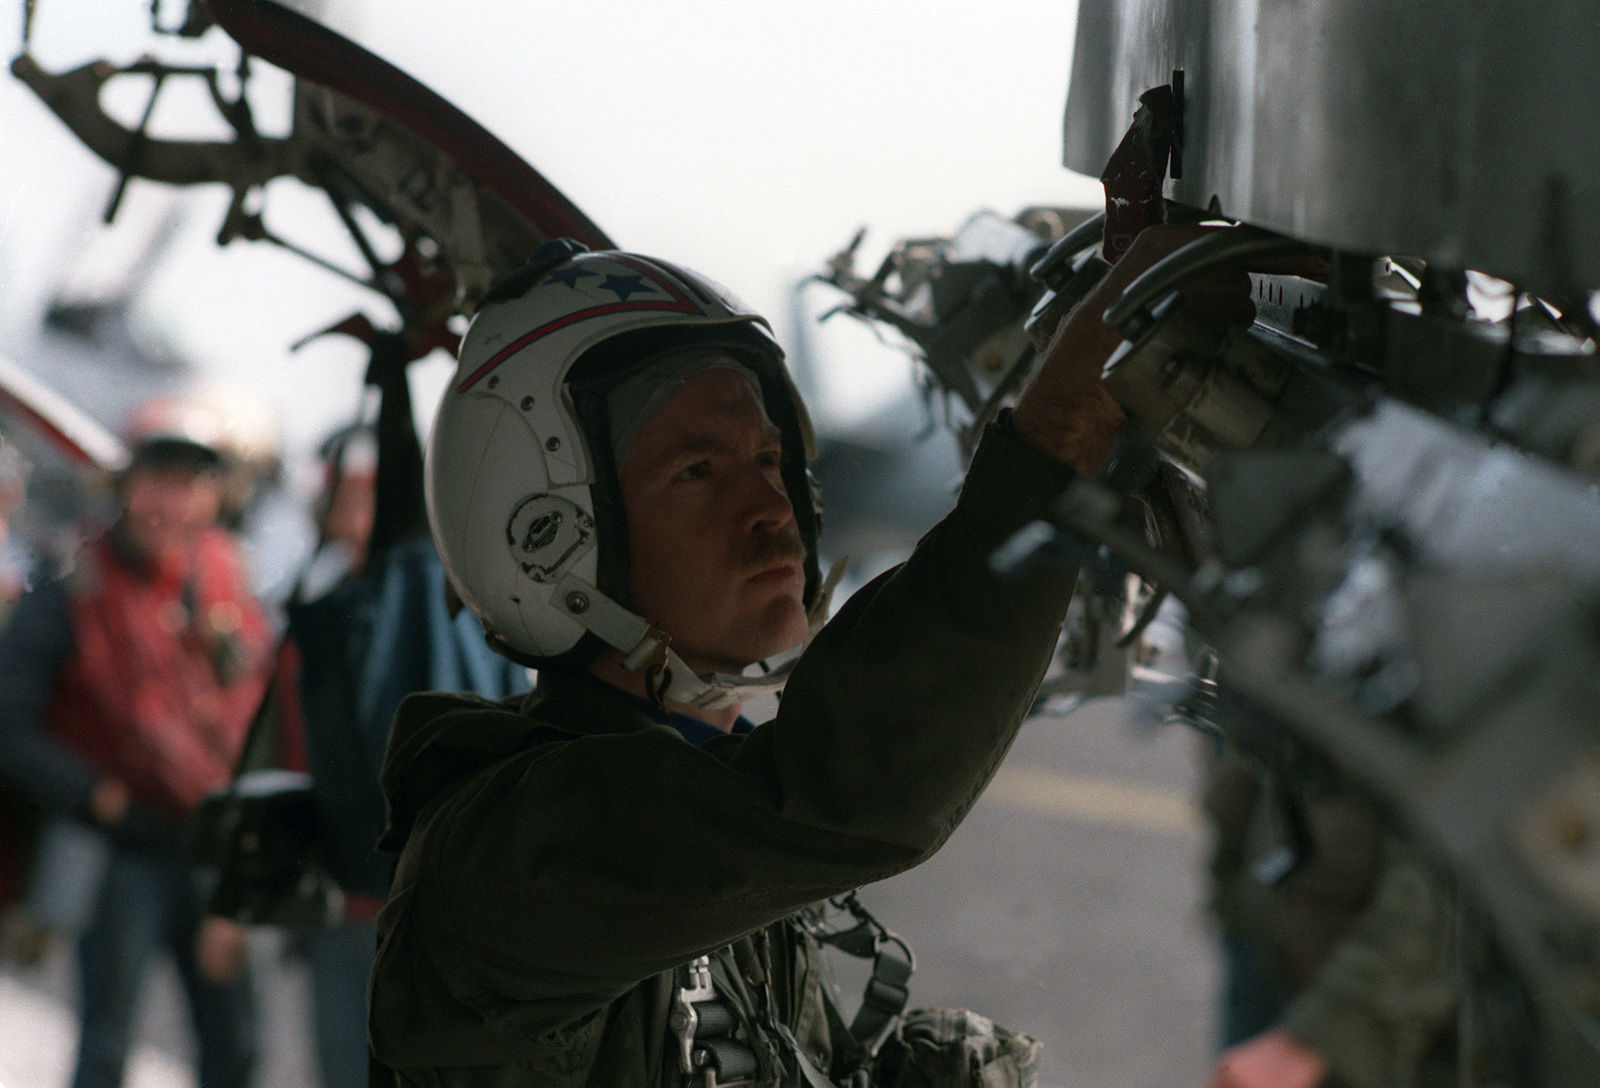 A pilot from Attack Squadron 34 (VA-34) conducts a final preflight check of his A-6E Intruder aircraft on the flight deck of the US Navy (USN) Nuclear-powered Aircraft Carrier USS DWIGHT D. EISENHOWER (CVN 69)